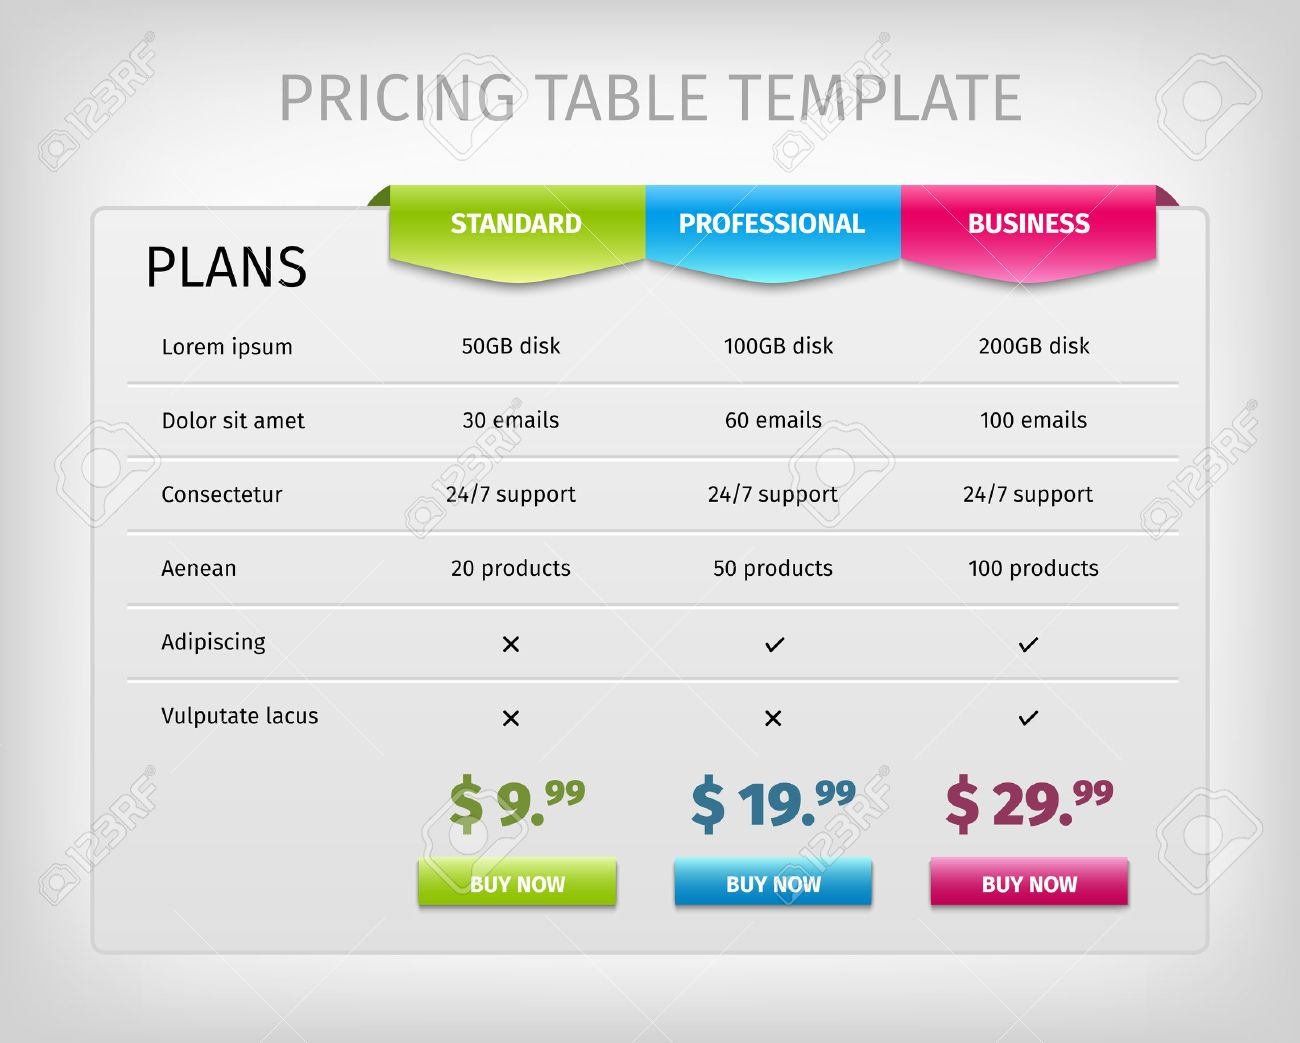 Web Pricing Table Template For Business Plan. Comparison Of Services.  Vector EPS10 Illustration.